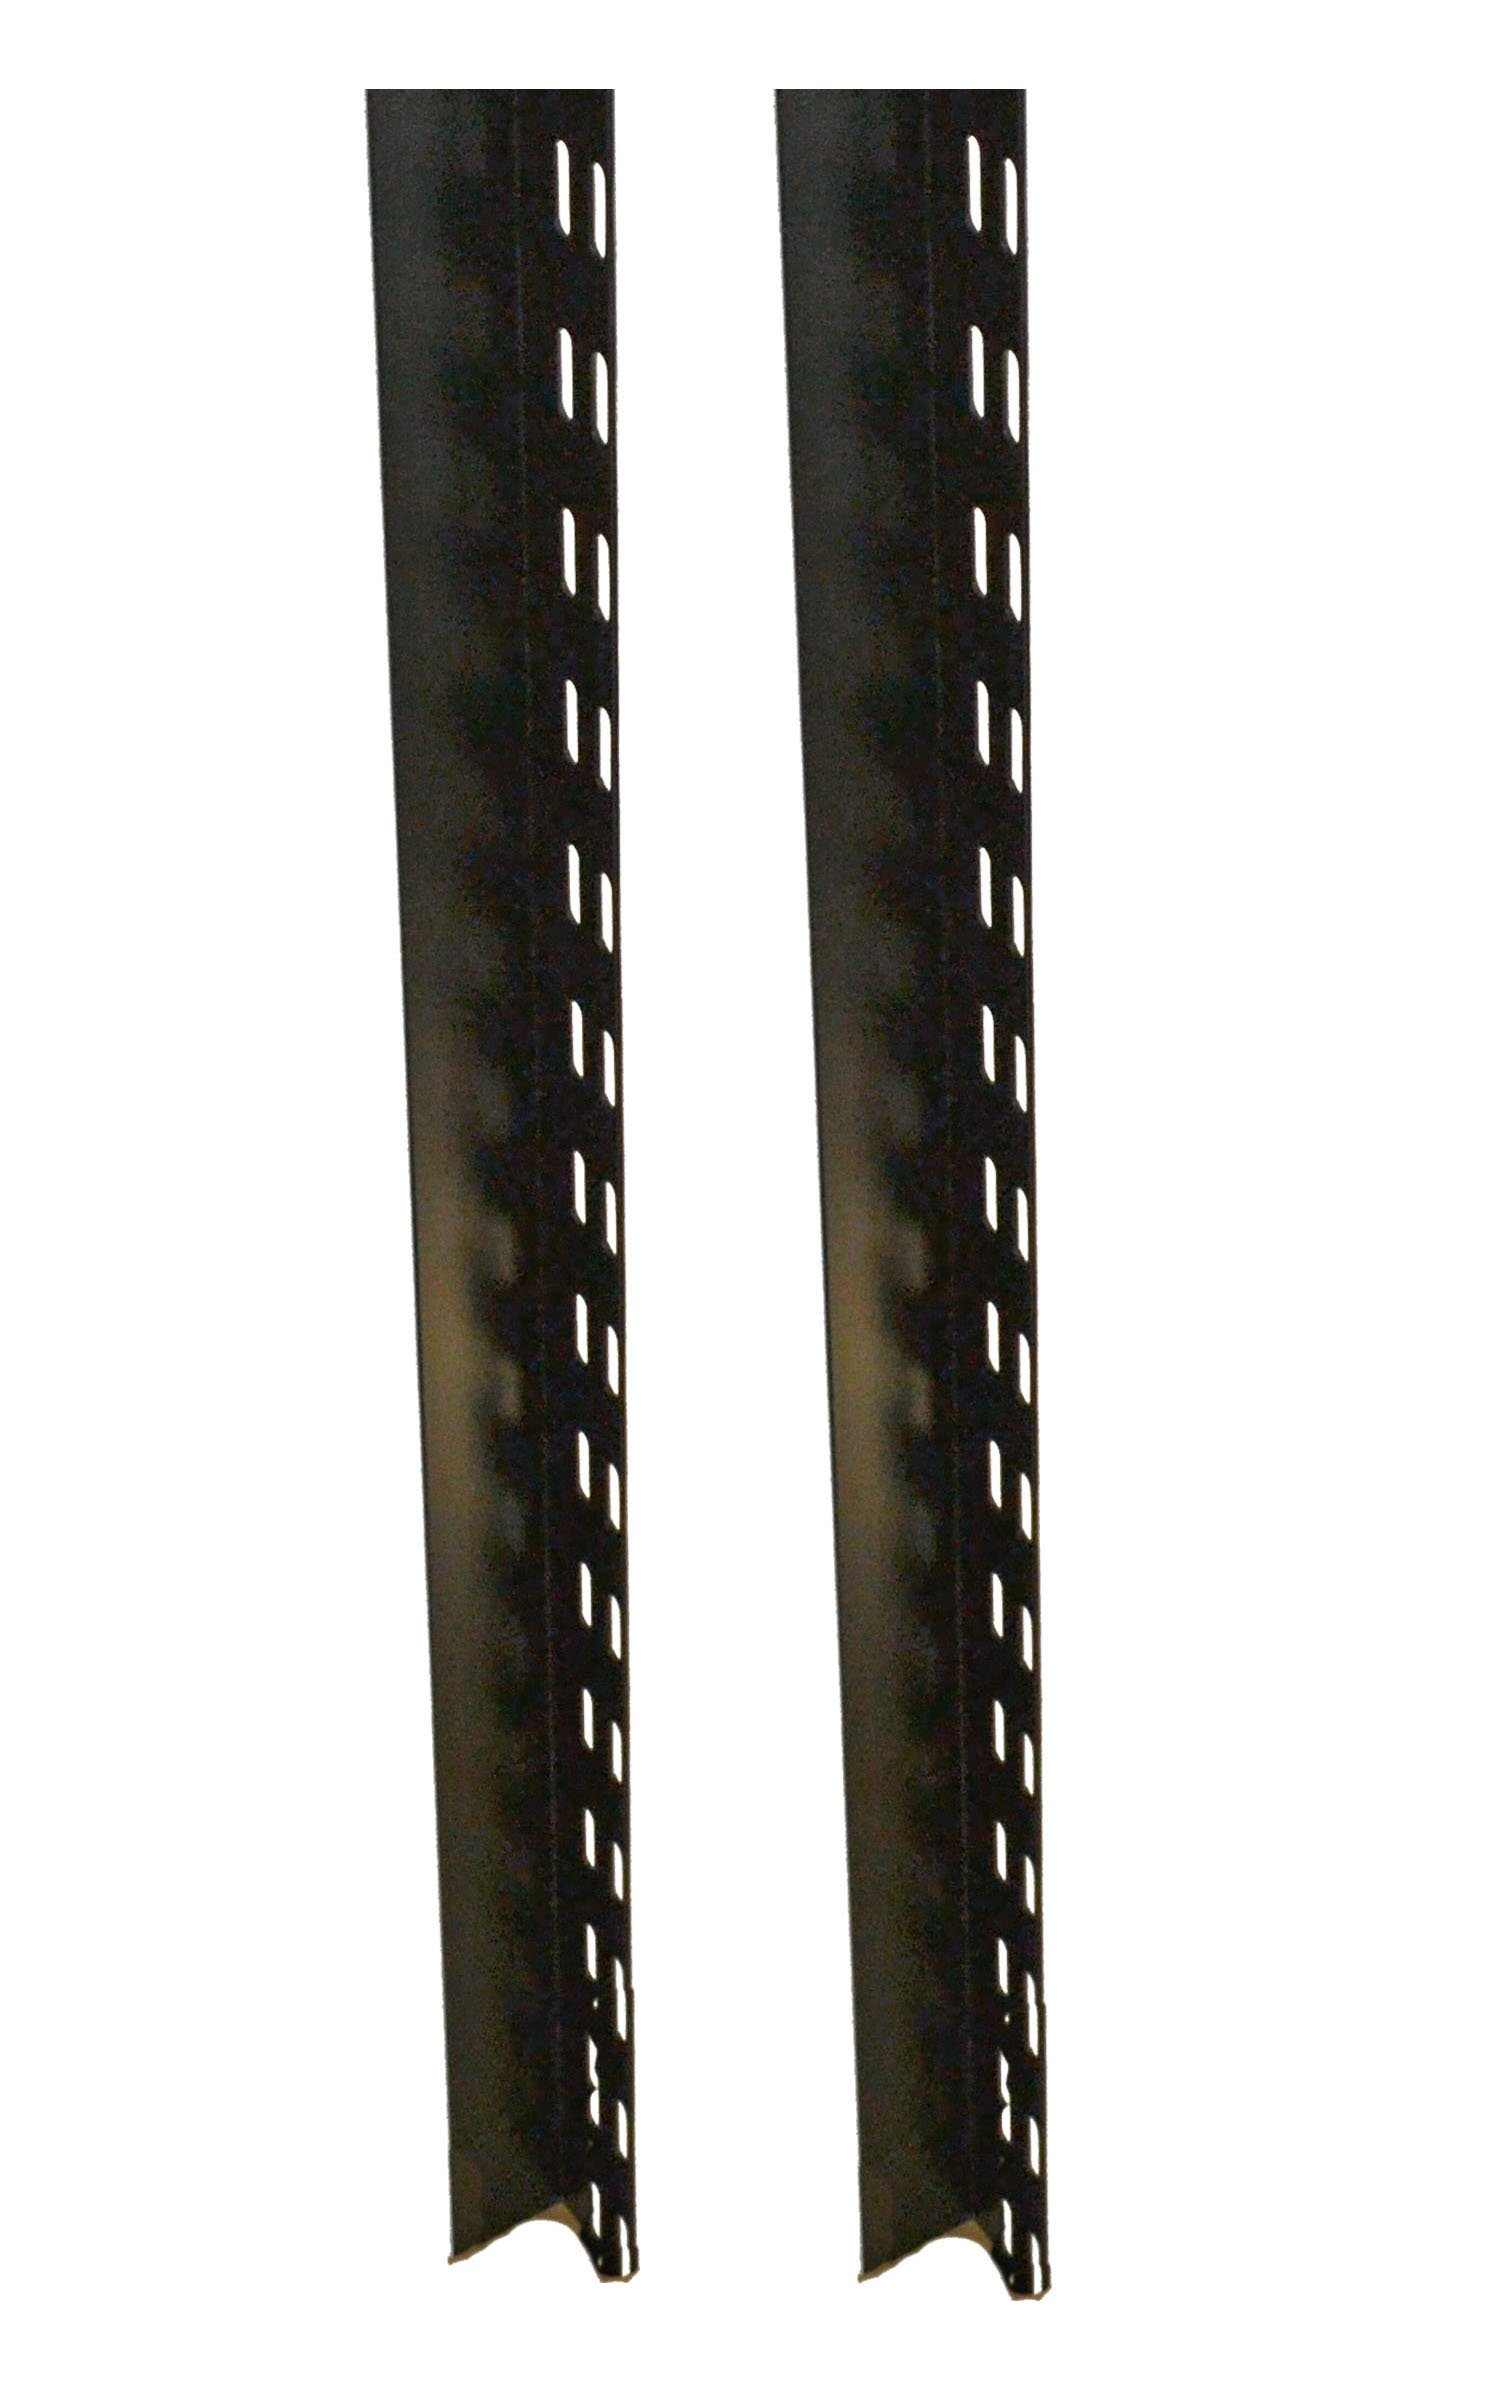 BUD Industries CSB-8180 14 Gauge Steel Chassis Support Bracket, 33'' Length x 1-45/64'' Height, Black Finish